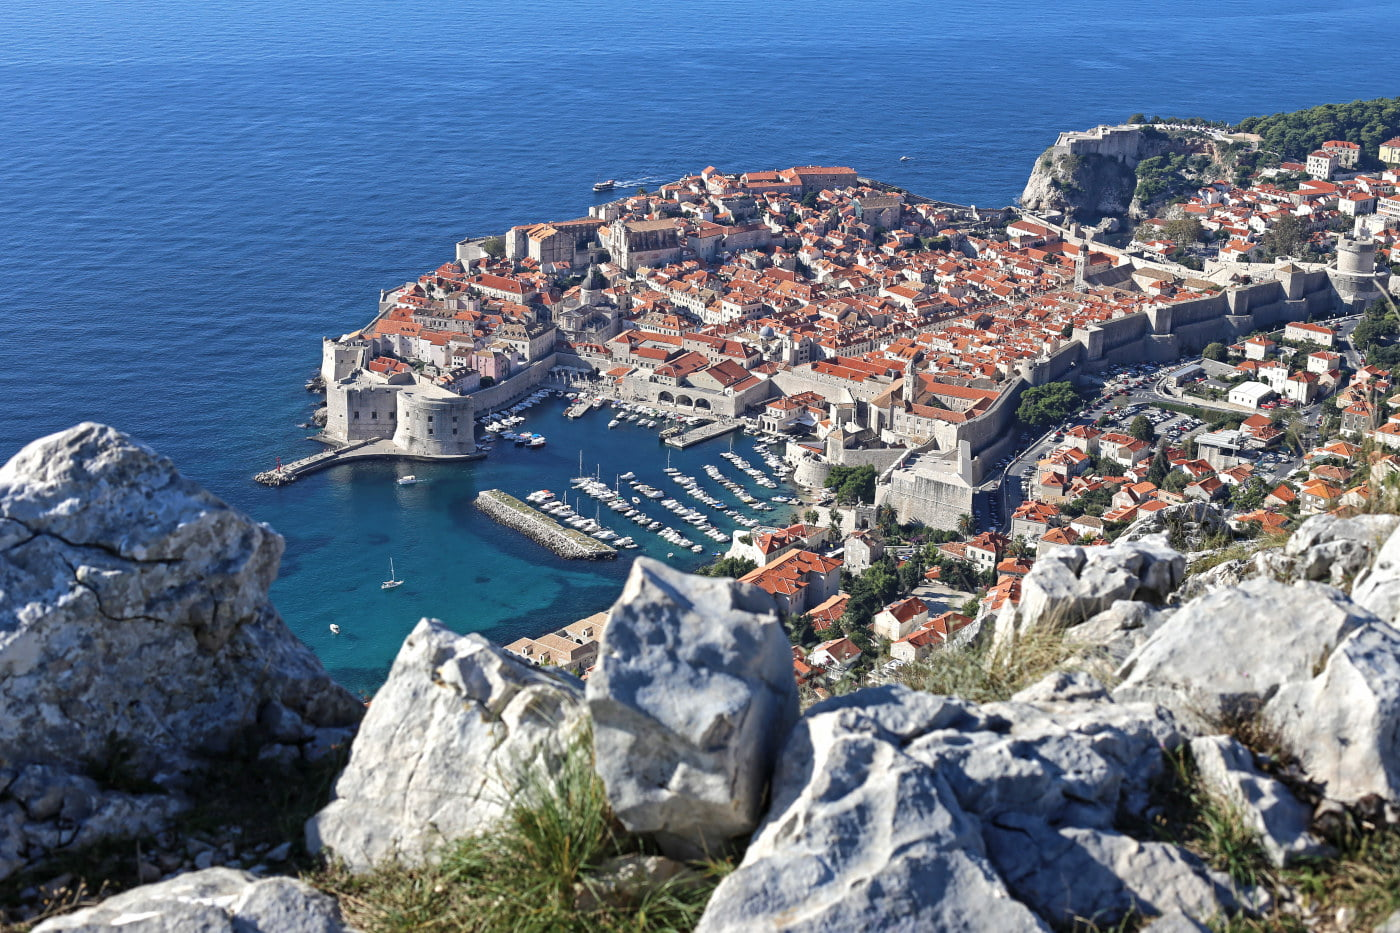 Dubrovnik Old Town Photo from Srđ mountain